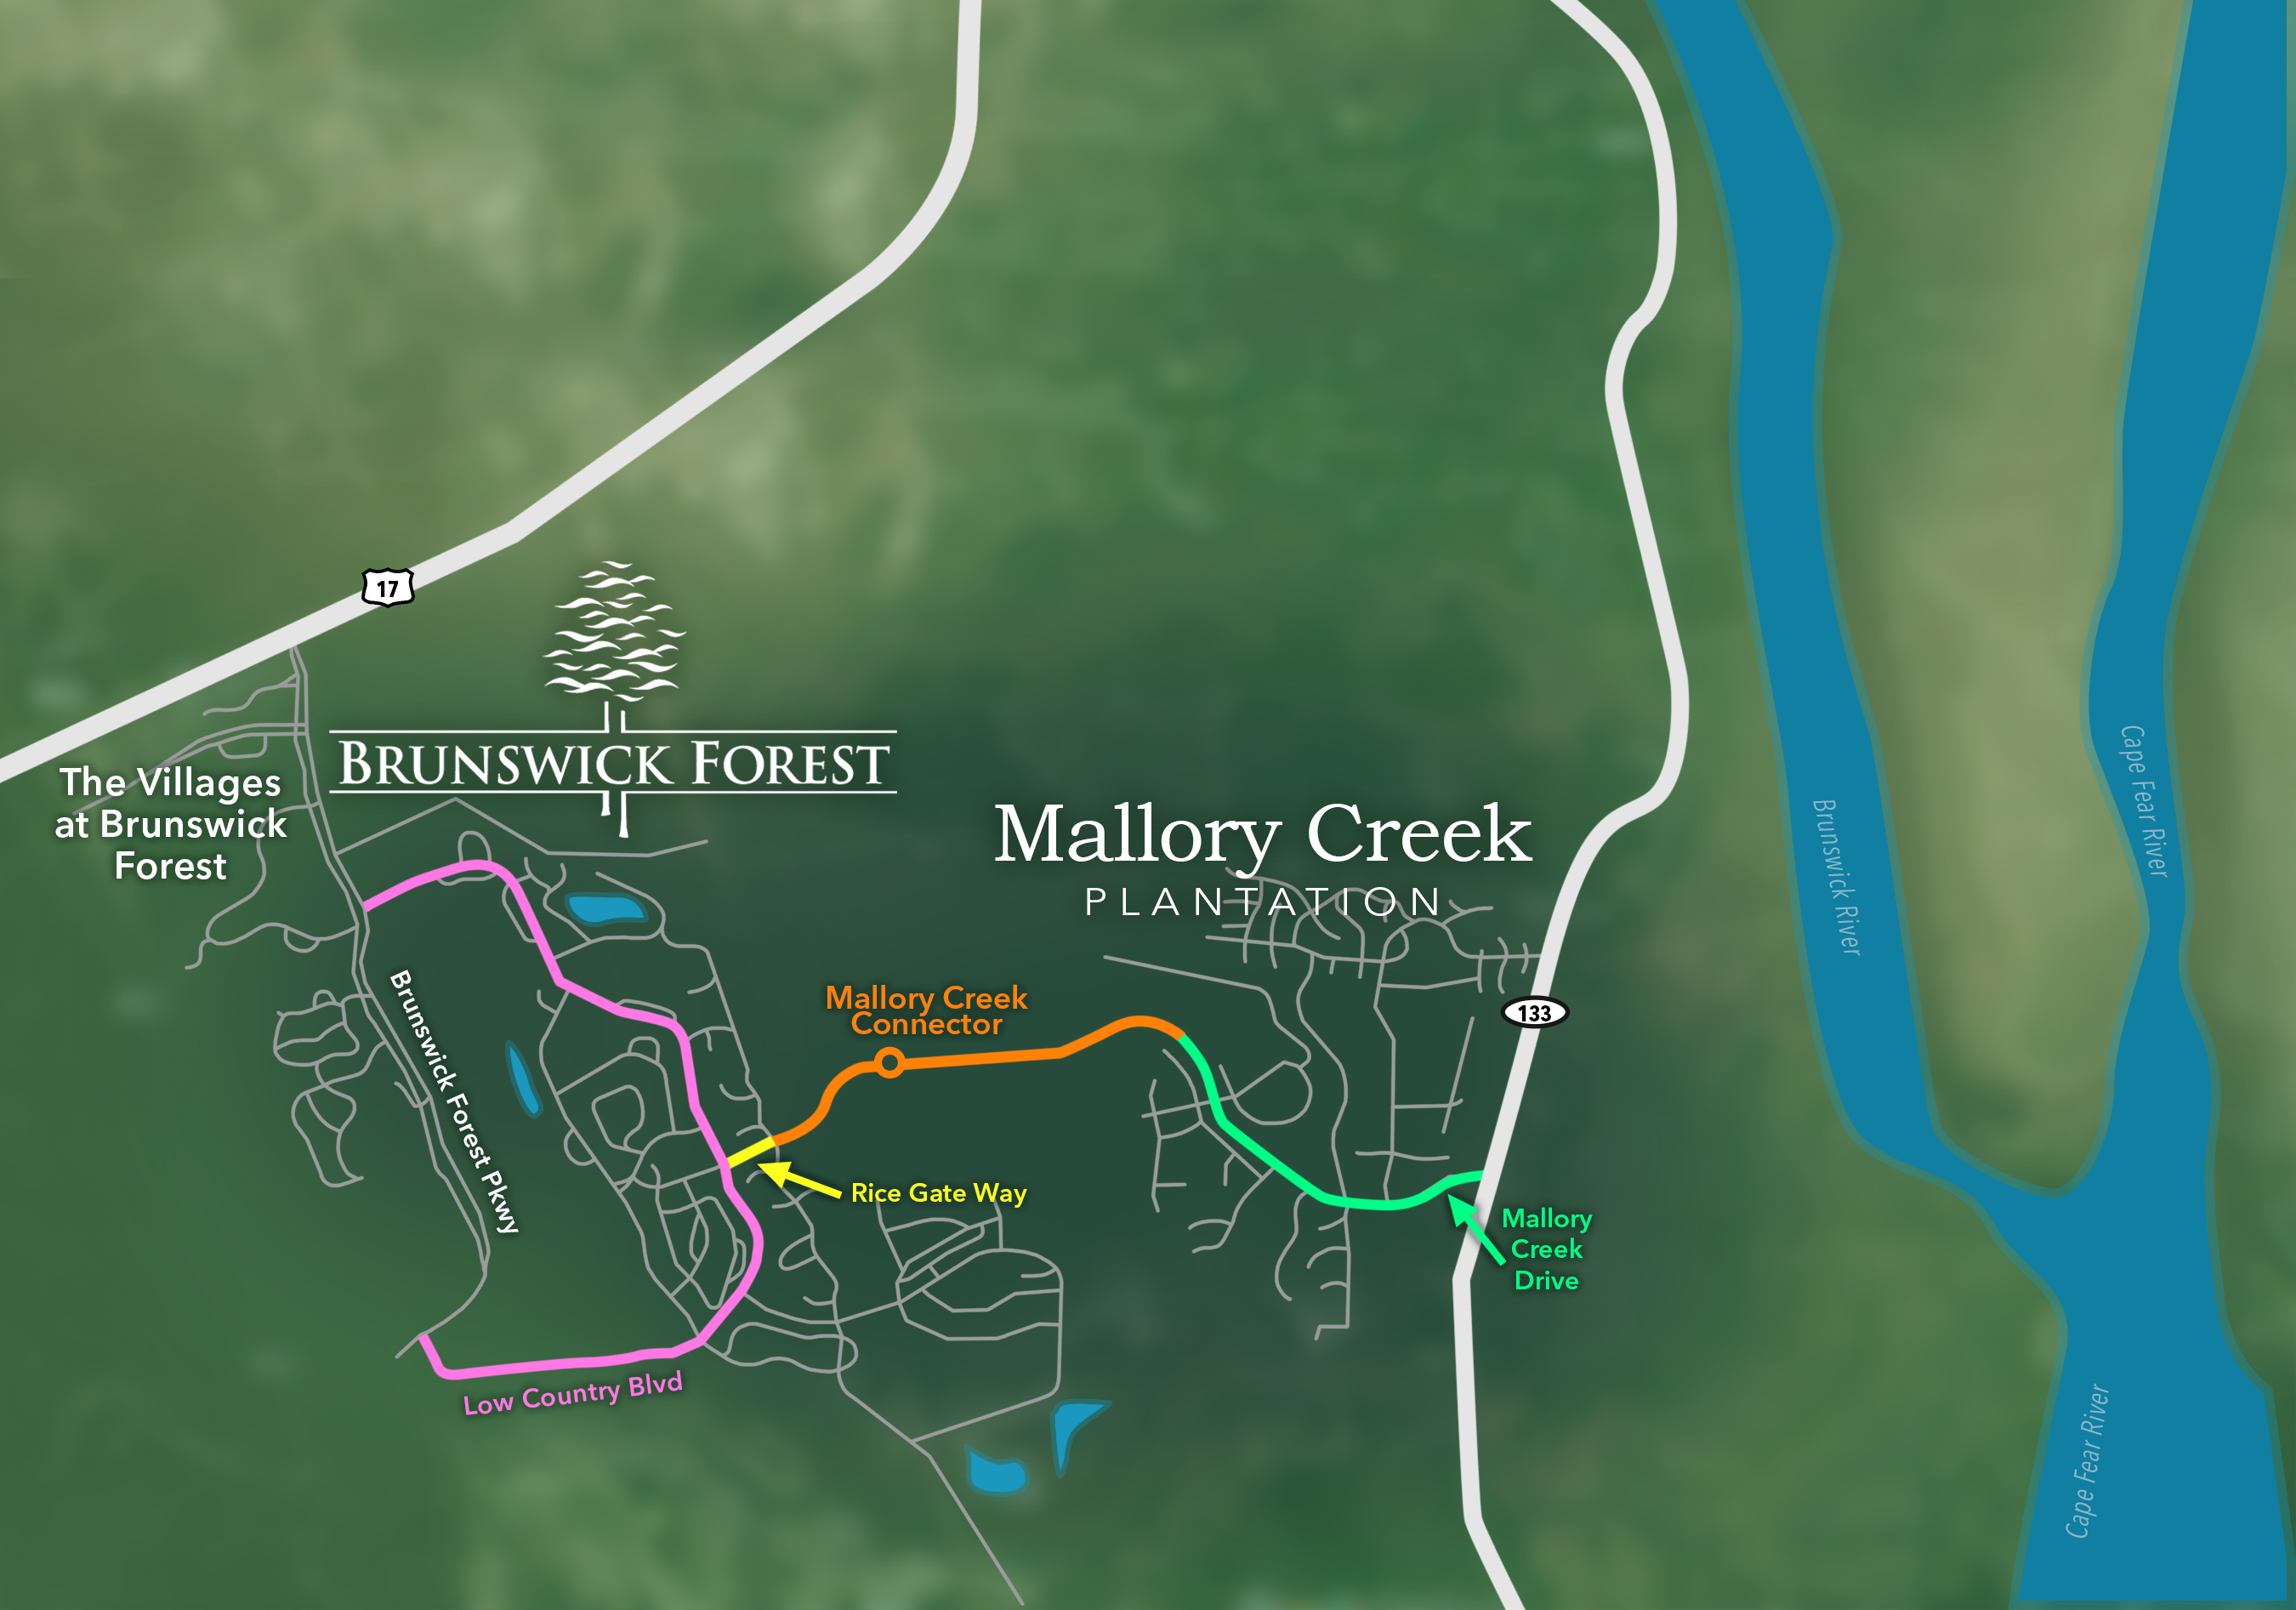 The Mallory Creek Connector in Leland, NC